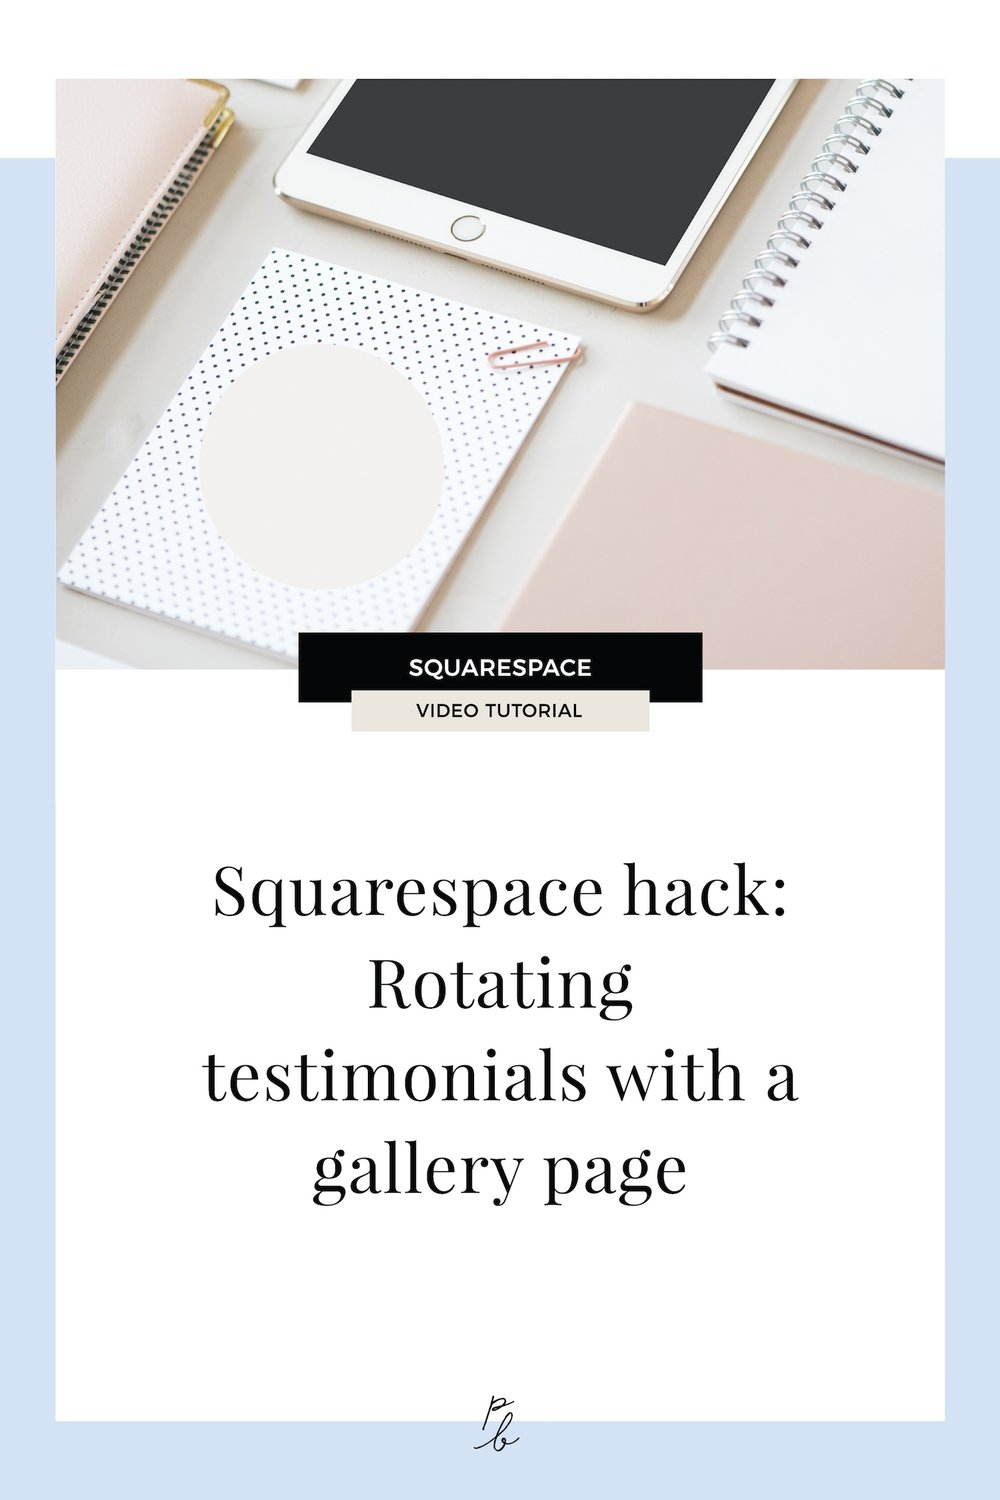 Squarespace hack: How to make rotating testimonials with a